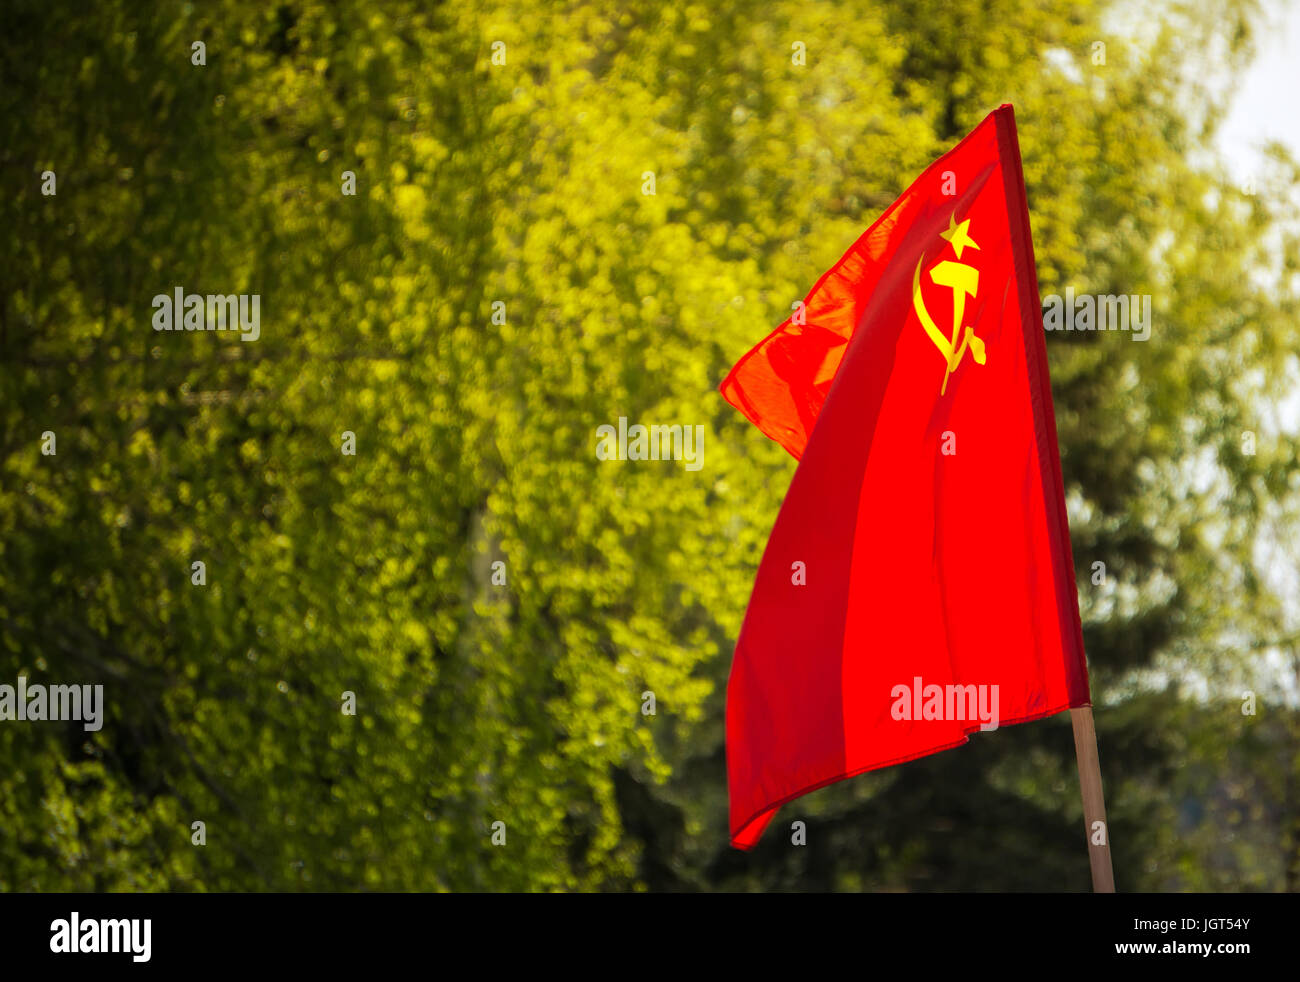 Union of Soviet Socialist Republics USSR HD flag. The flag with the hammer and sickle on a background of green trees. Stock Photo